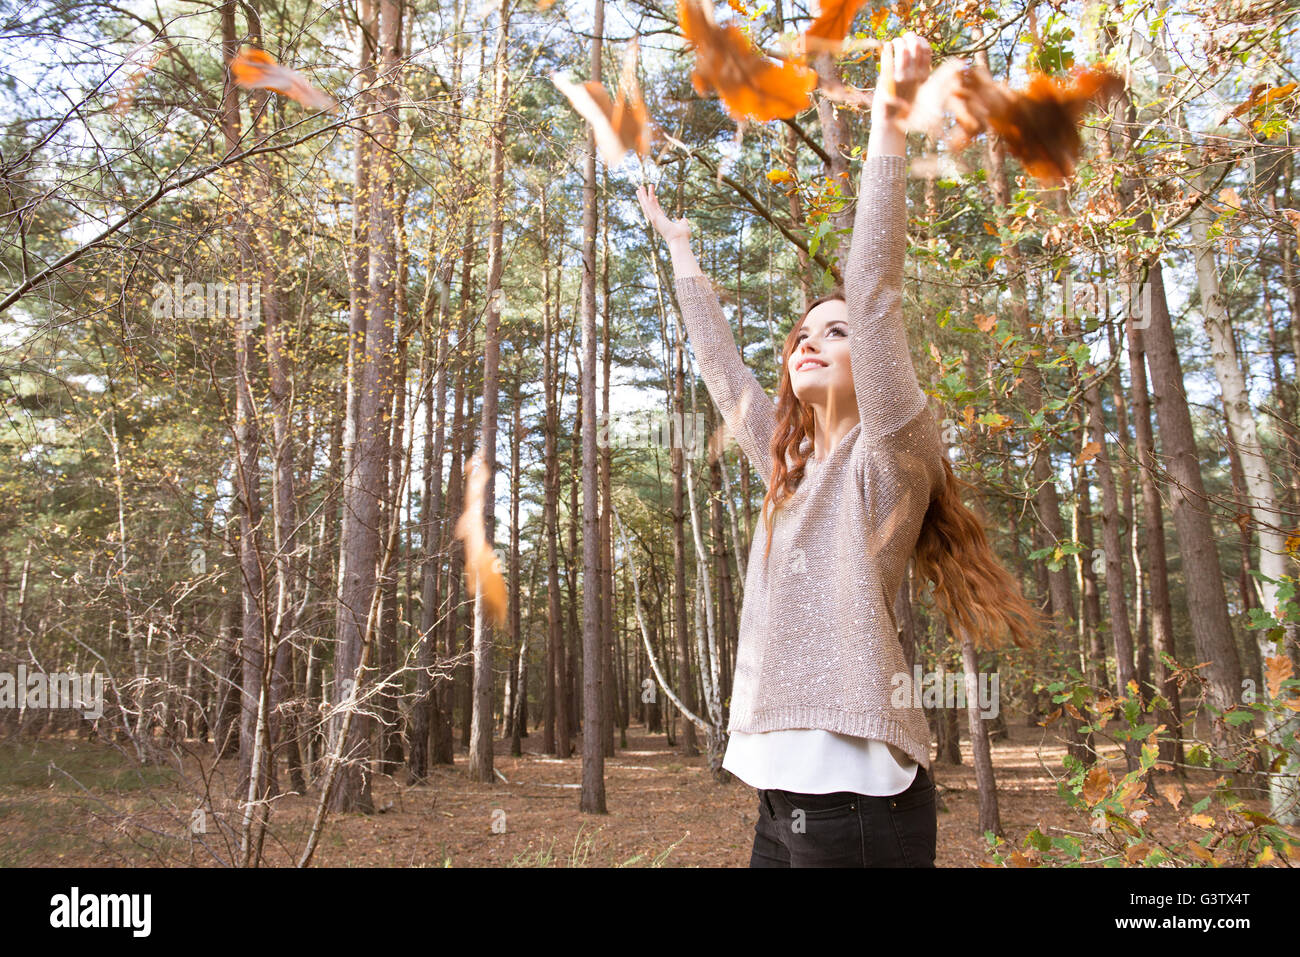 A young woman throwing a handful of leaves in a forest in Autumn. - Stock Image